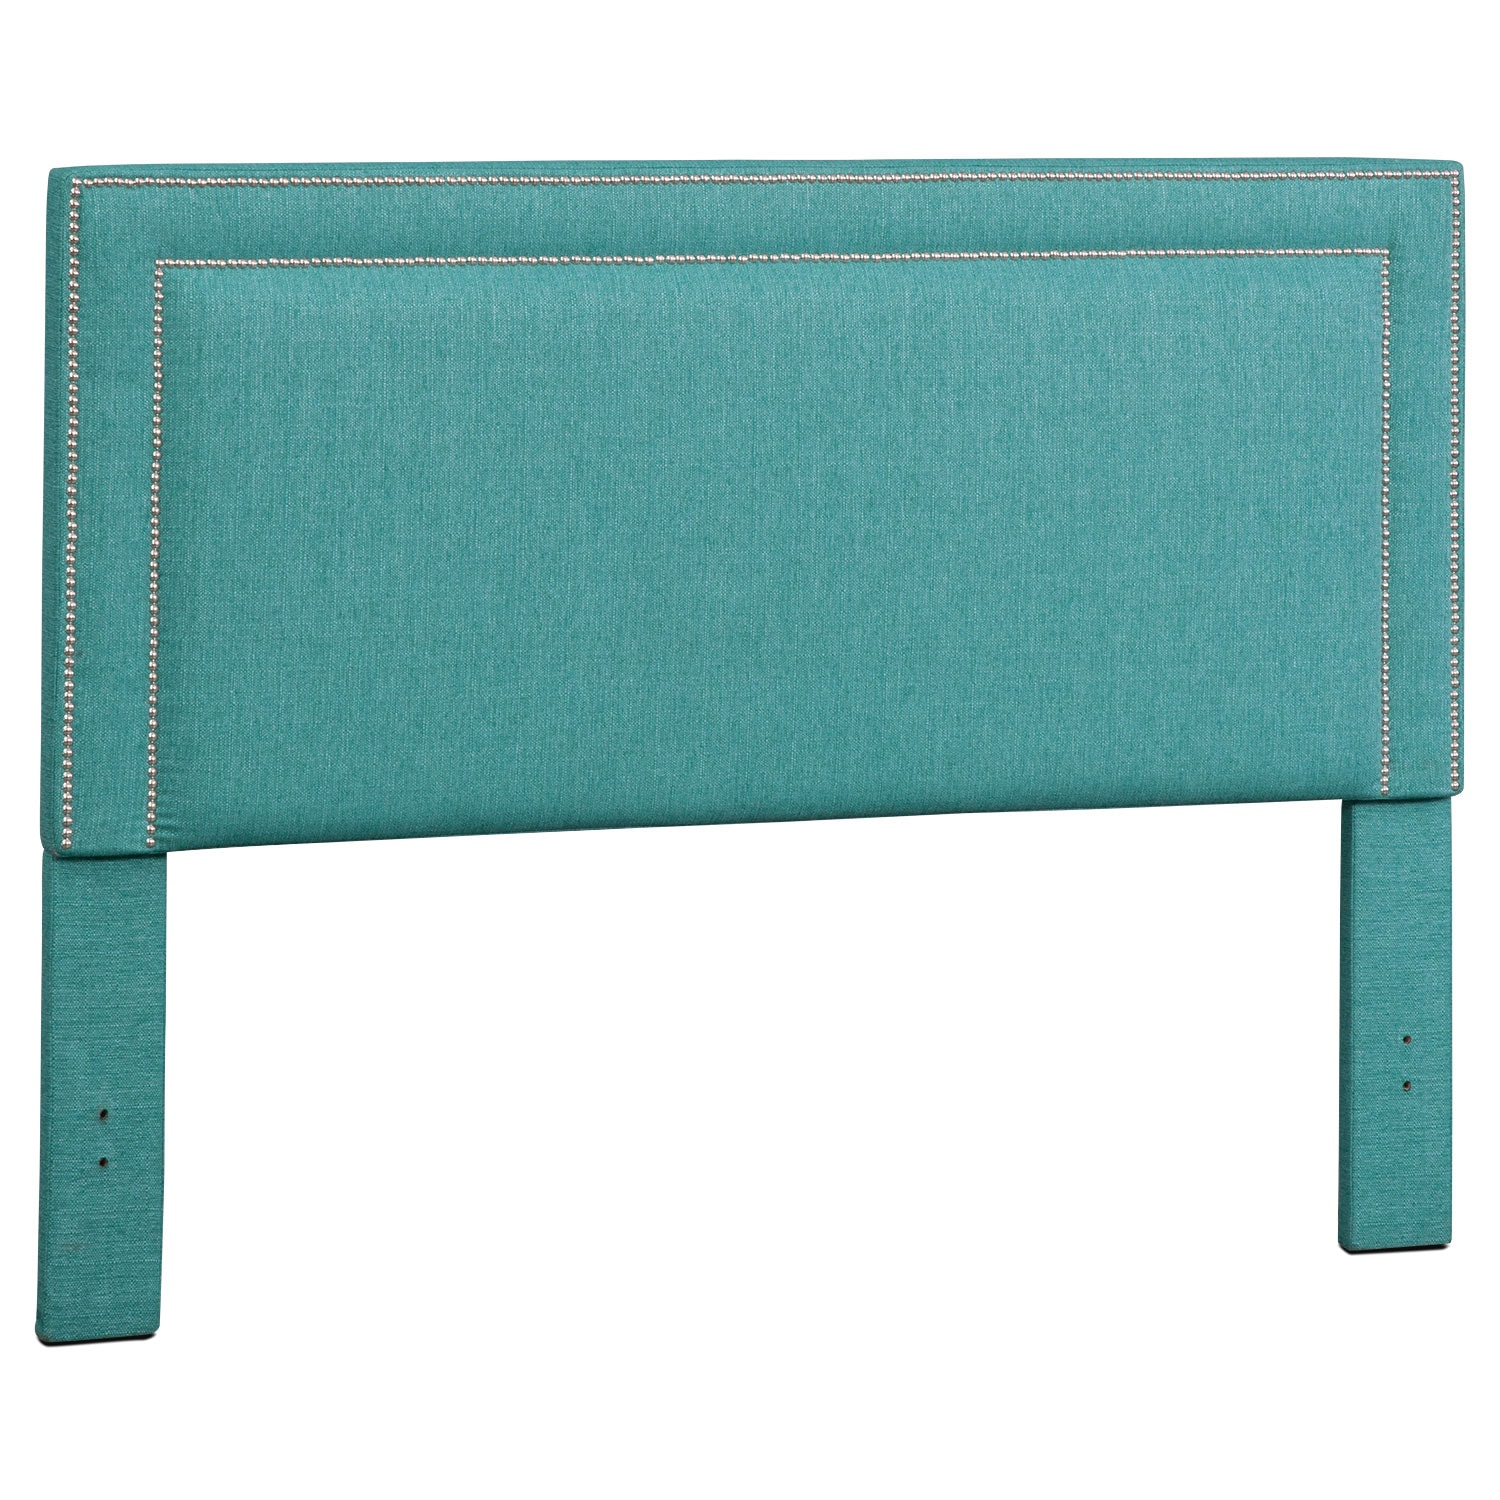 Bedroom Furniture - Natalie King Upholstered Headboard - Teal